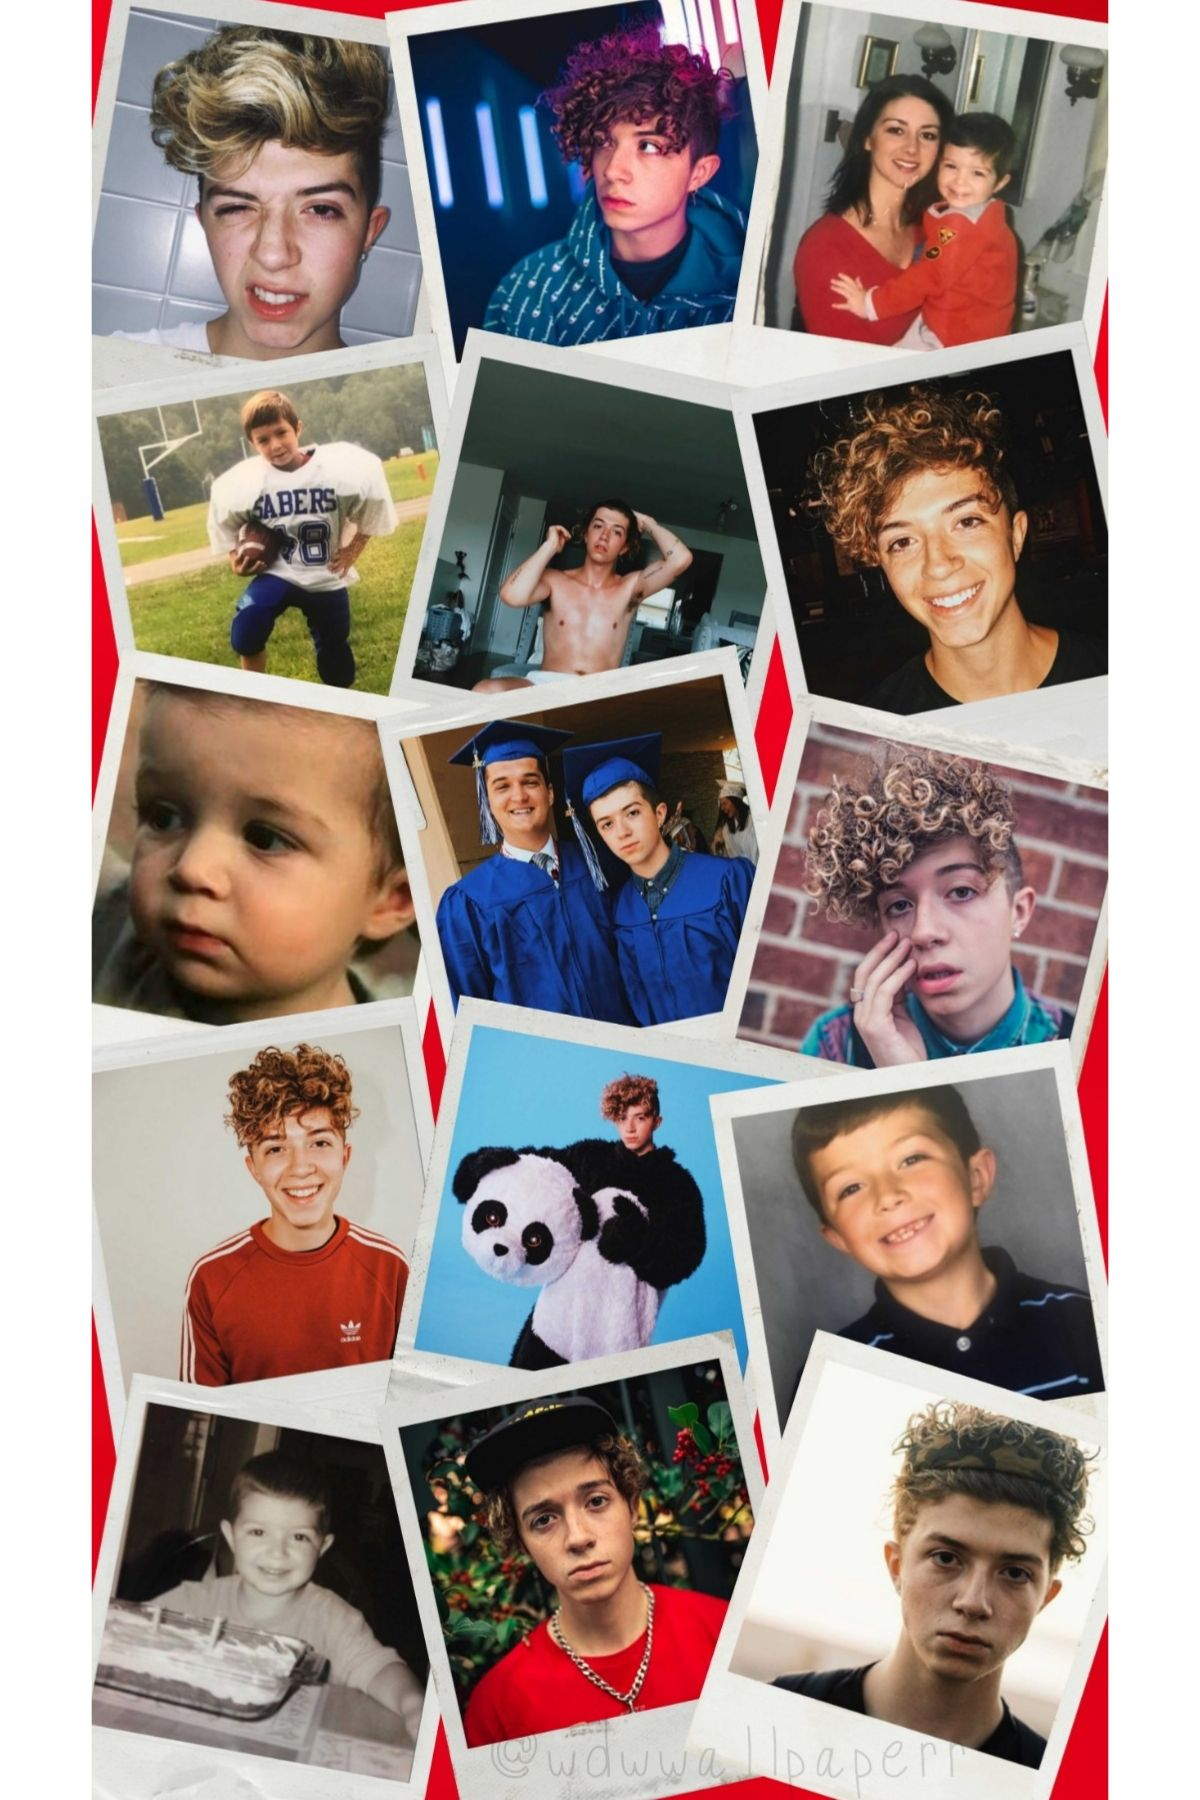 Jack Avery wallpaper Why don't we wallpaper in 2020 Jack